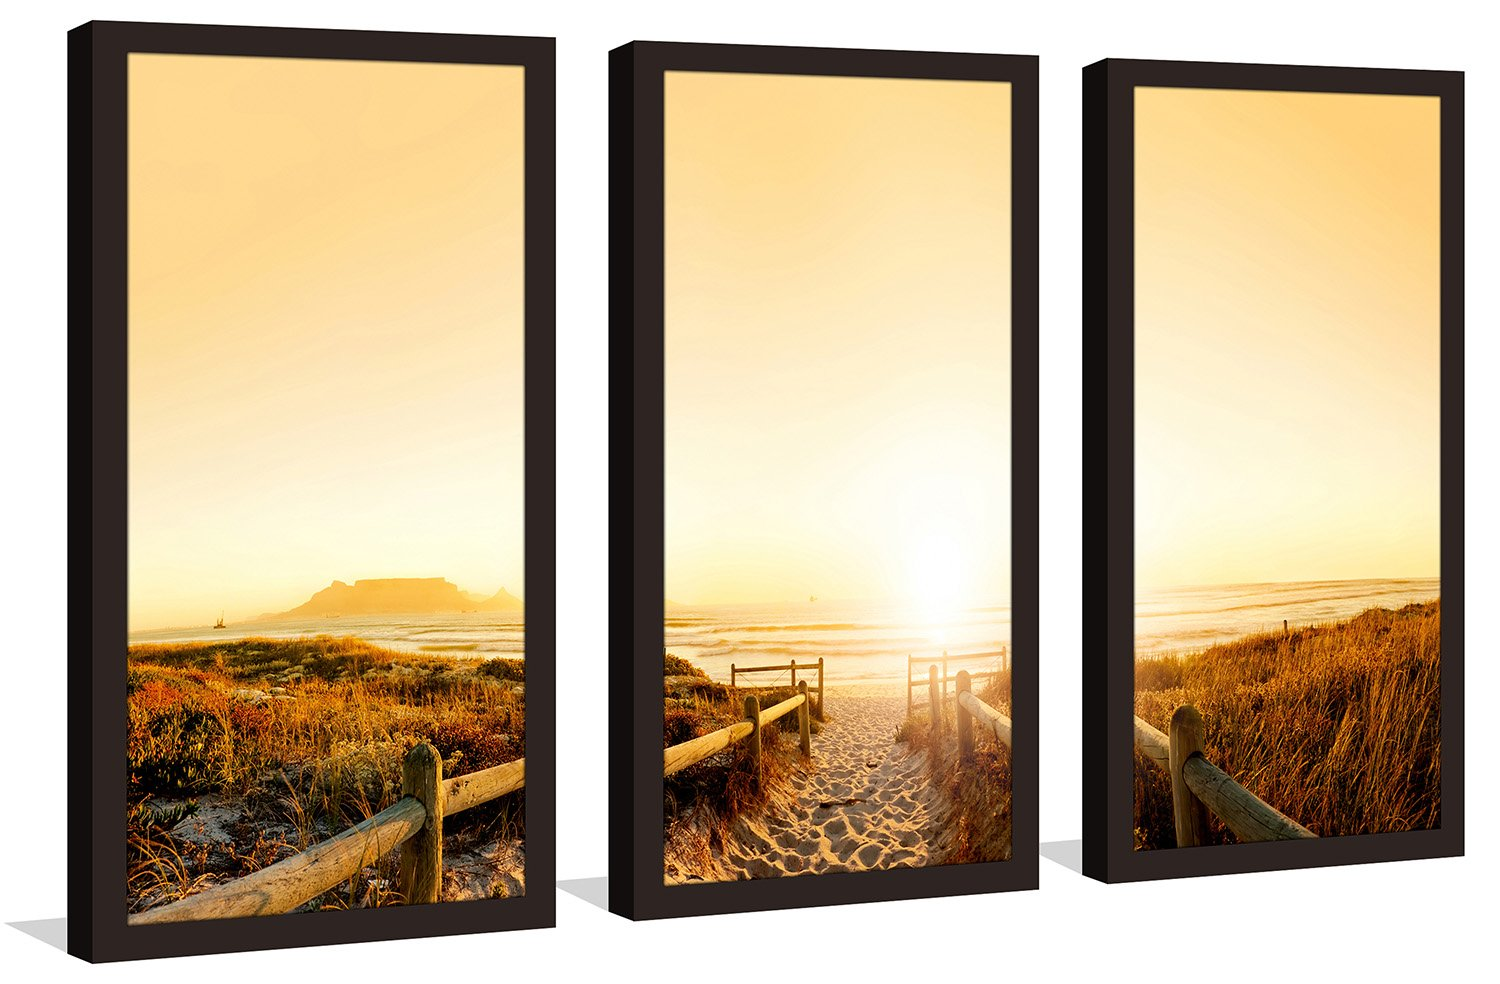 South Africa Framed Plexiglass Wall Art Set of 3 Picture Perfect InternationalSunset in Cape Town